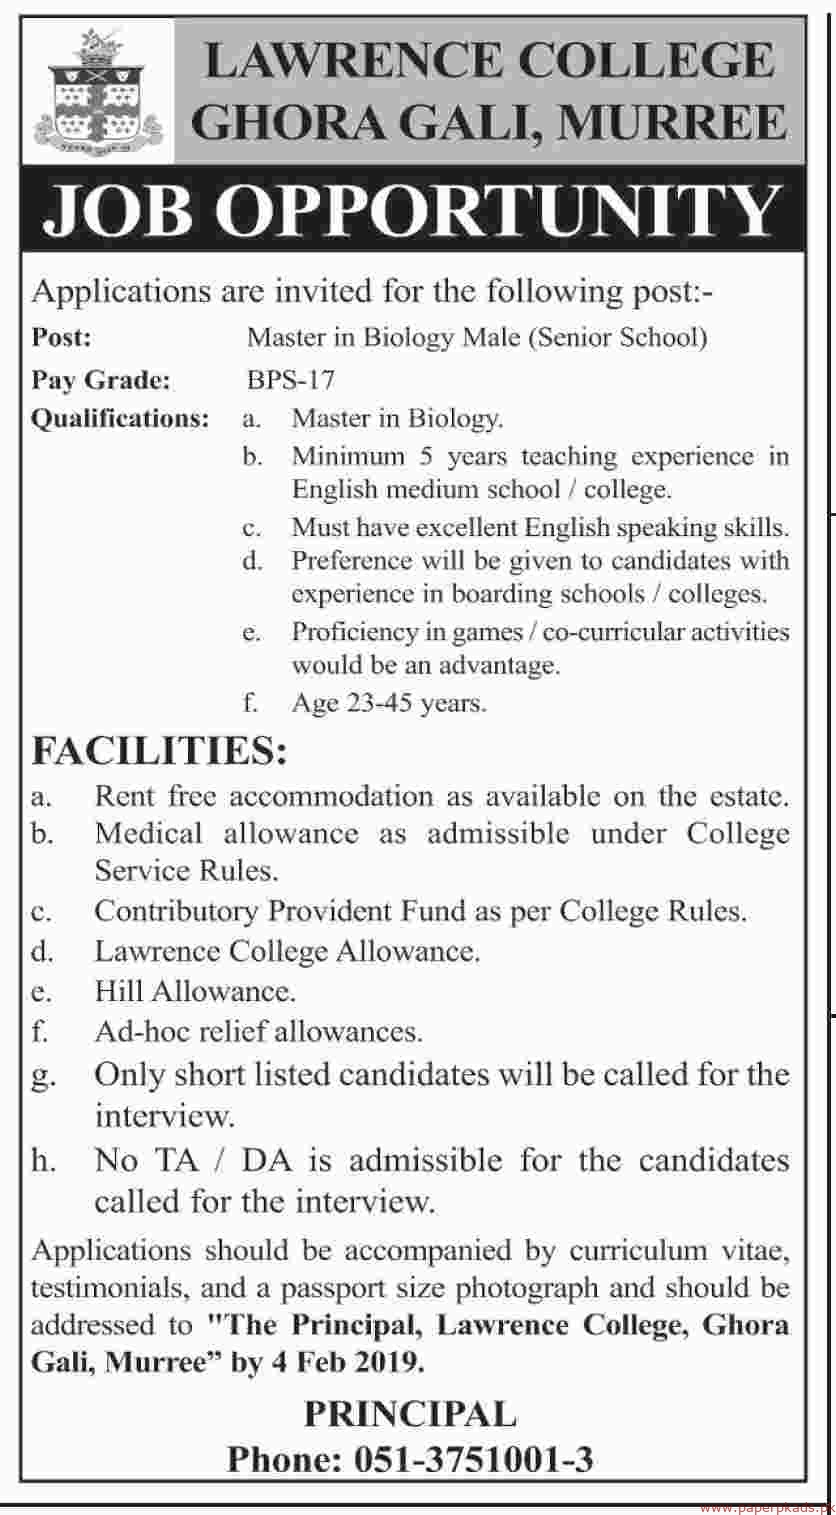 Lawrence College Ghora Gali Murree Jobs 2019 Latest